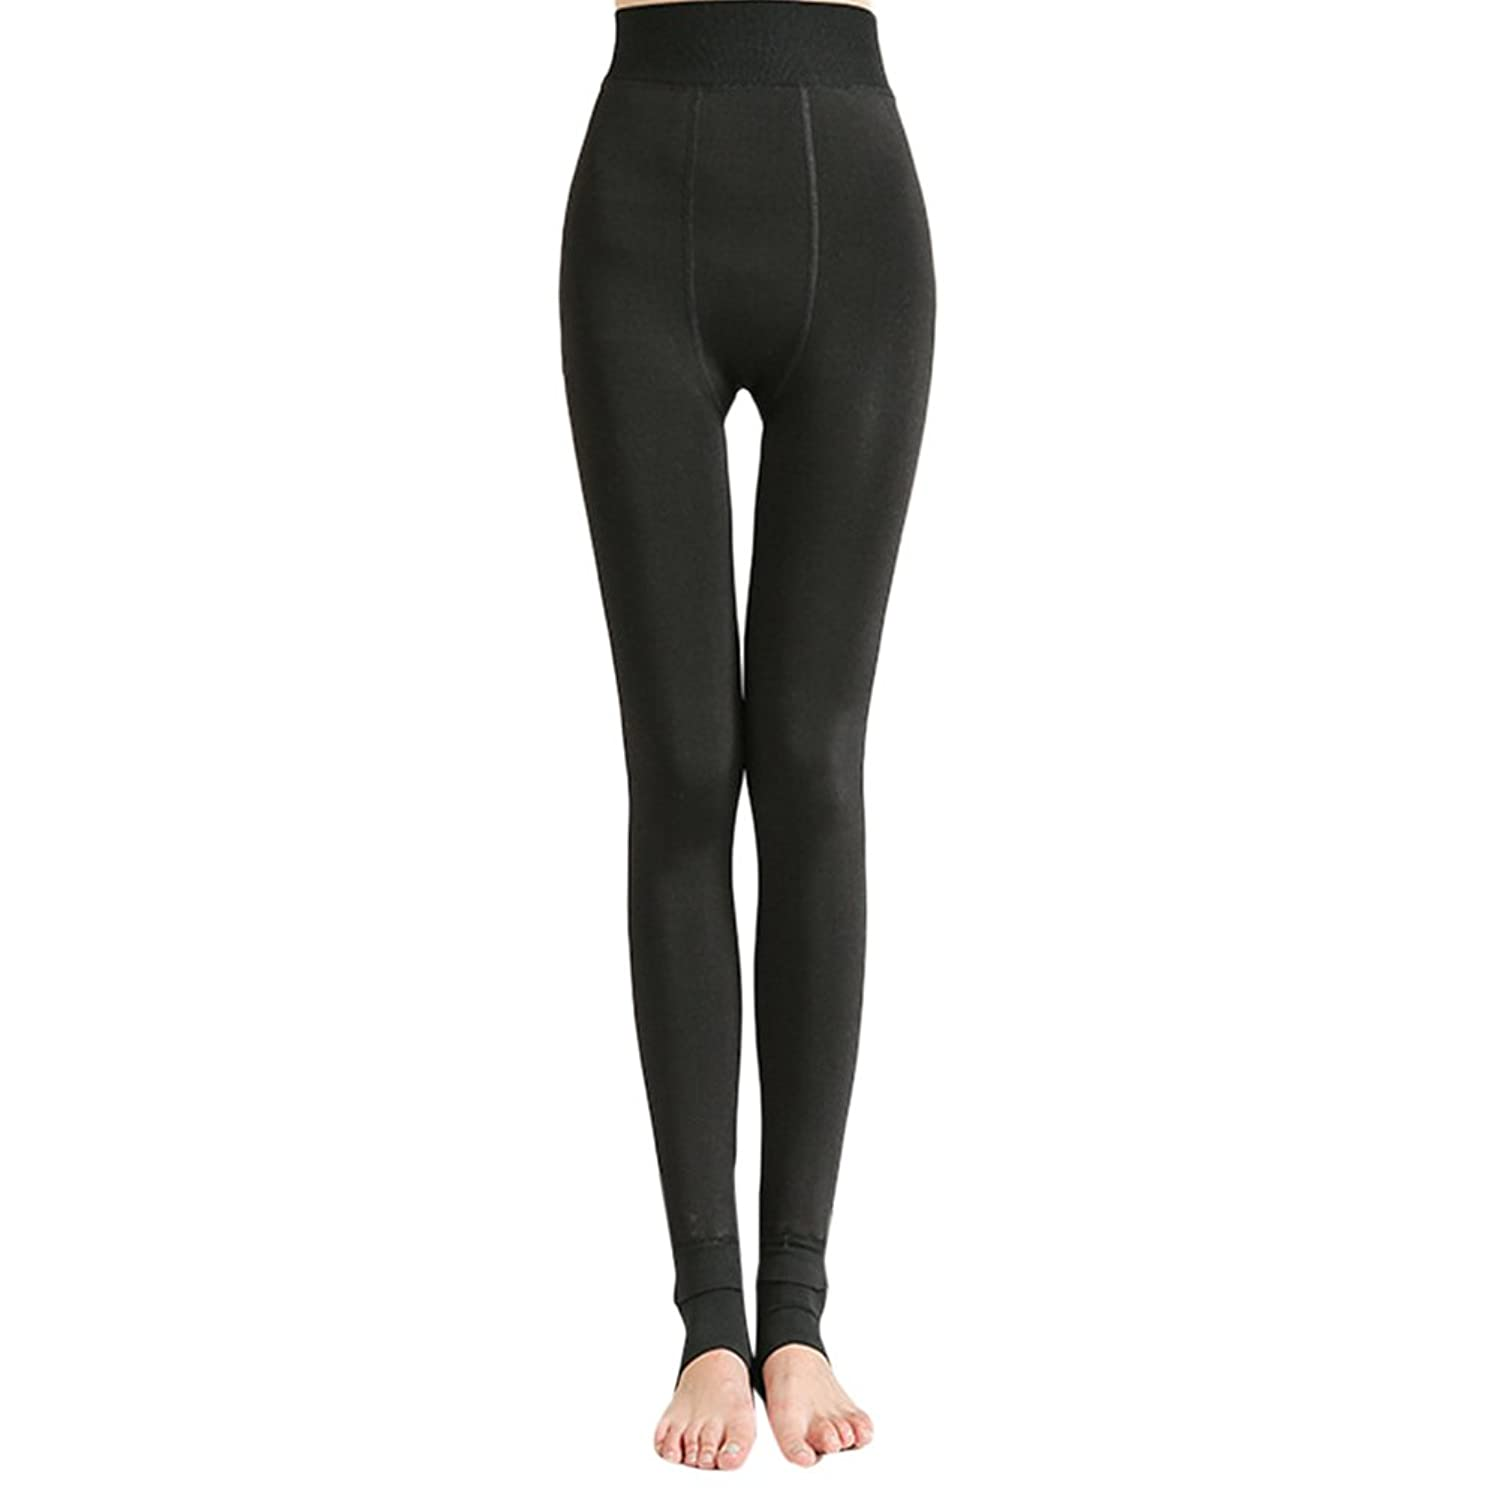 Zhhlaixing ファッション Plus Cashmere Thick Pants New Warm Breathable Comfortable レギンスパンツ for Ladies Women